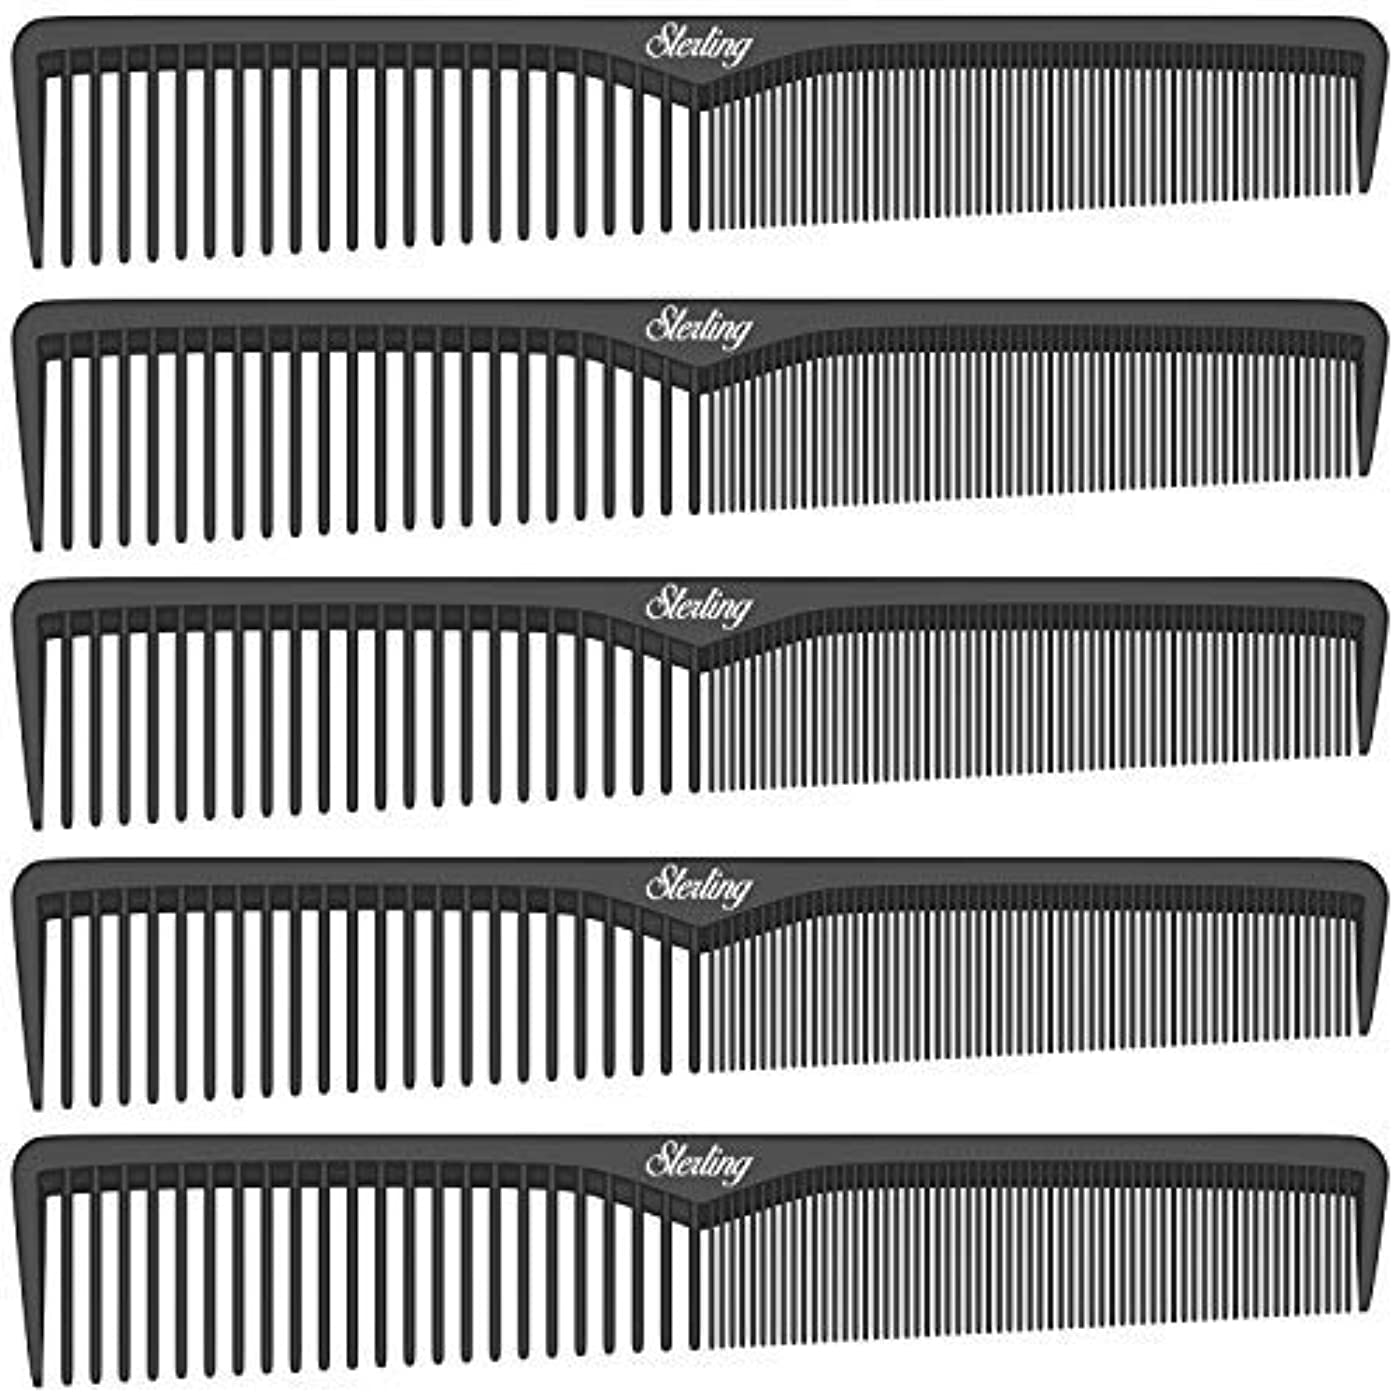 時折投げ捨てるラウズSterling Beauty Tools Styling Combs, Professional 7